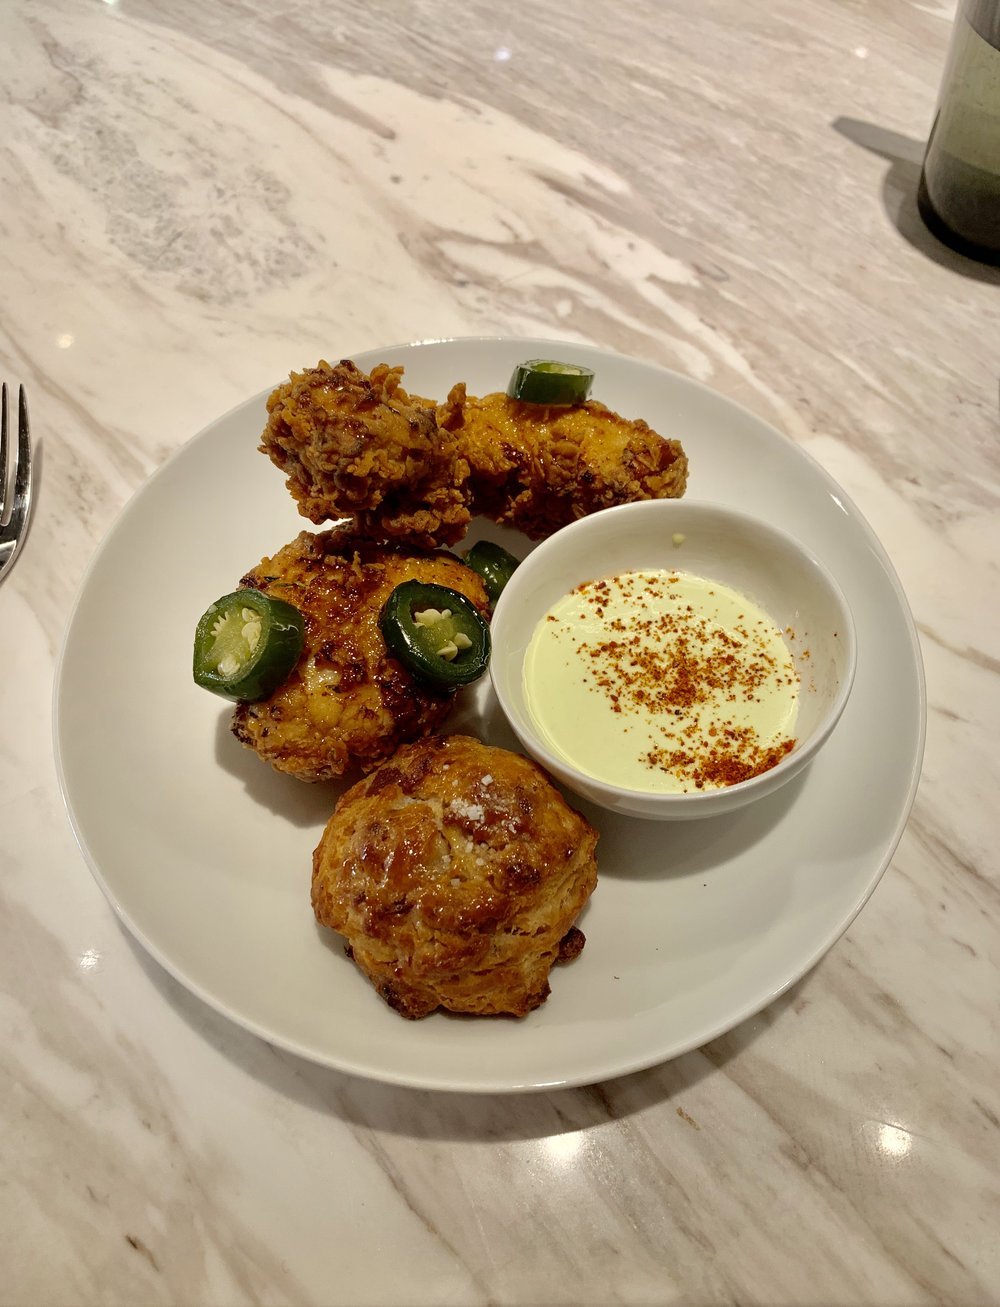 Fried Chicken at Intersect by Lexus